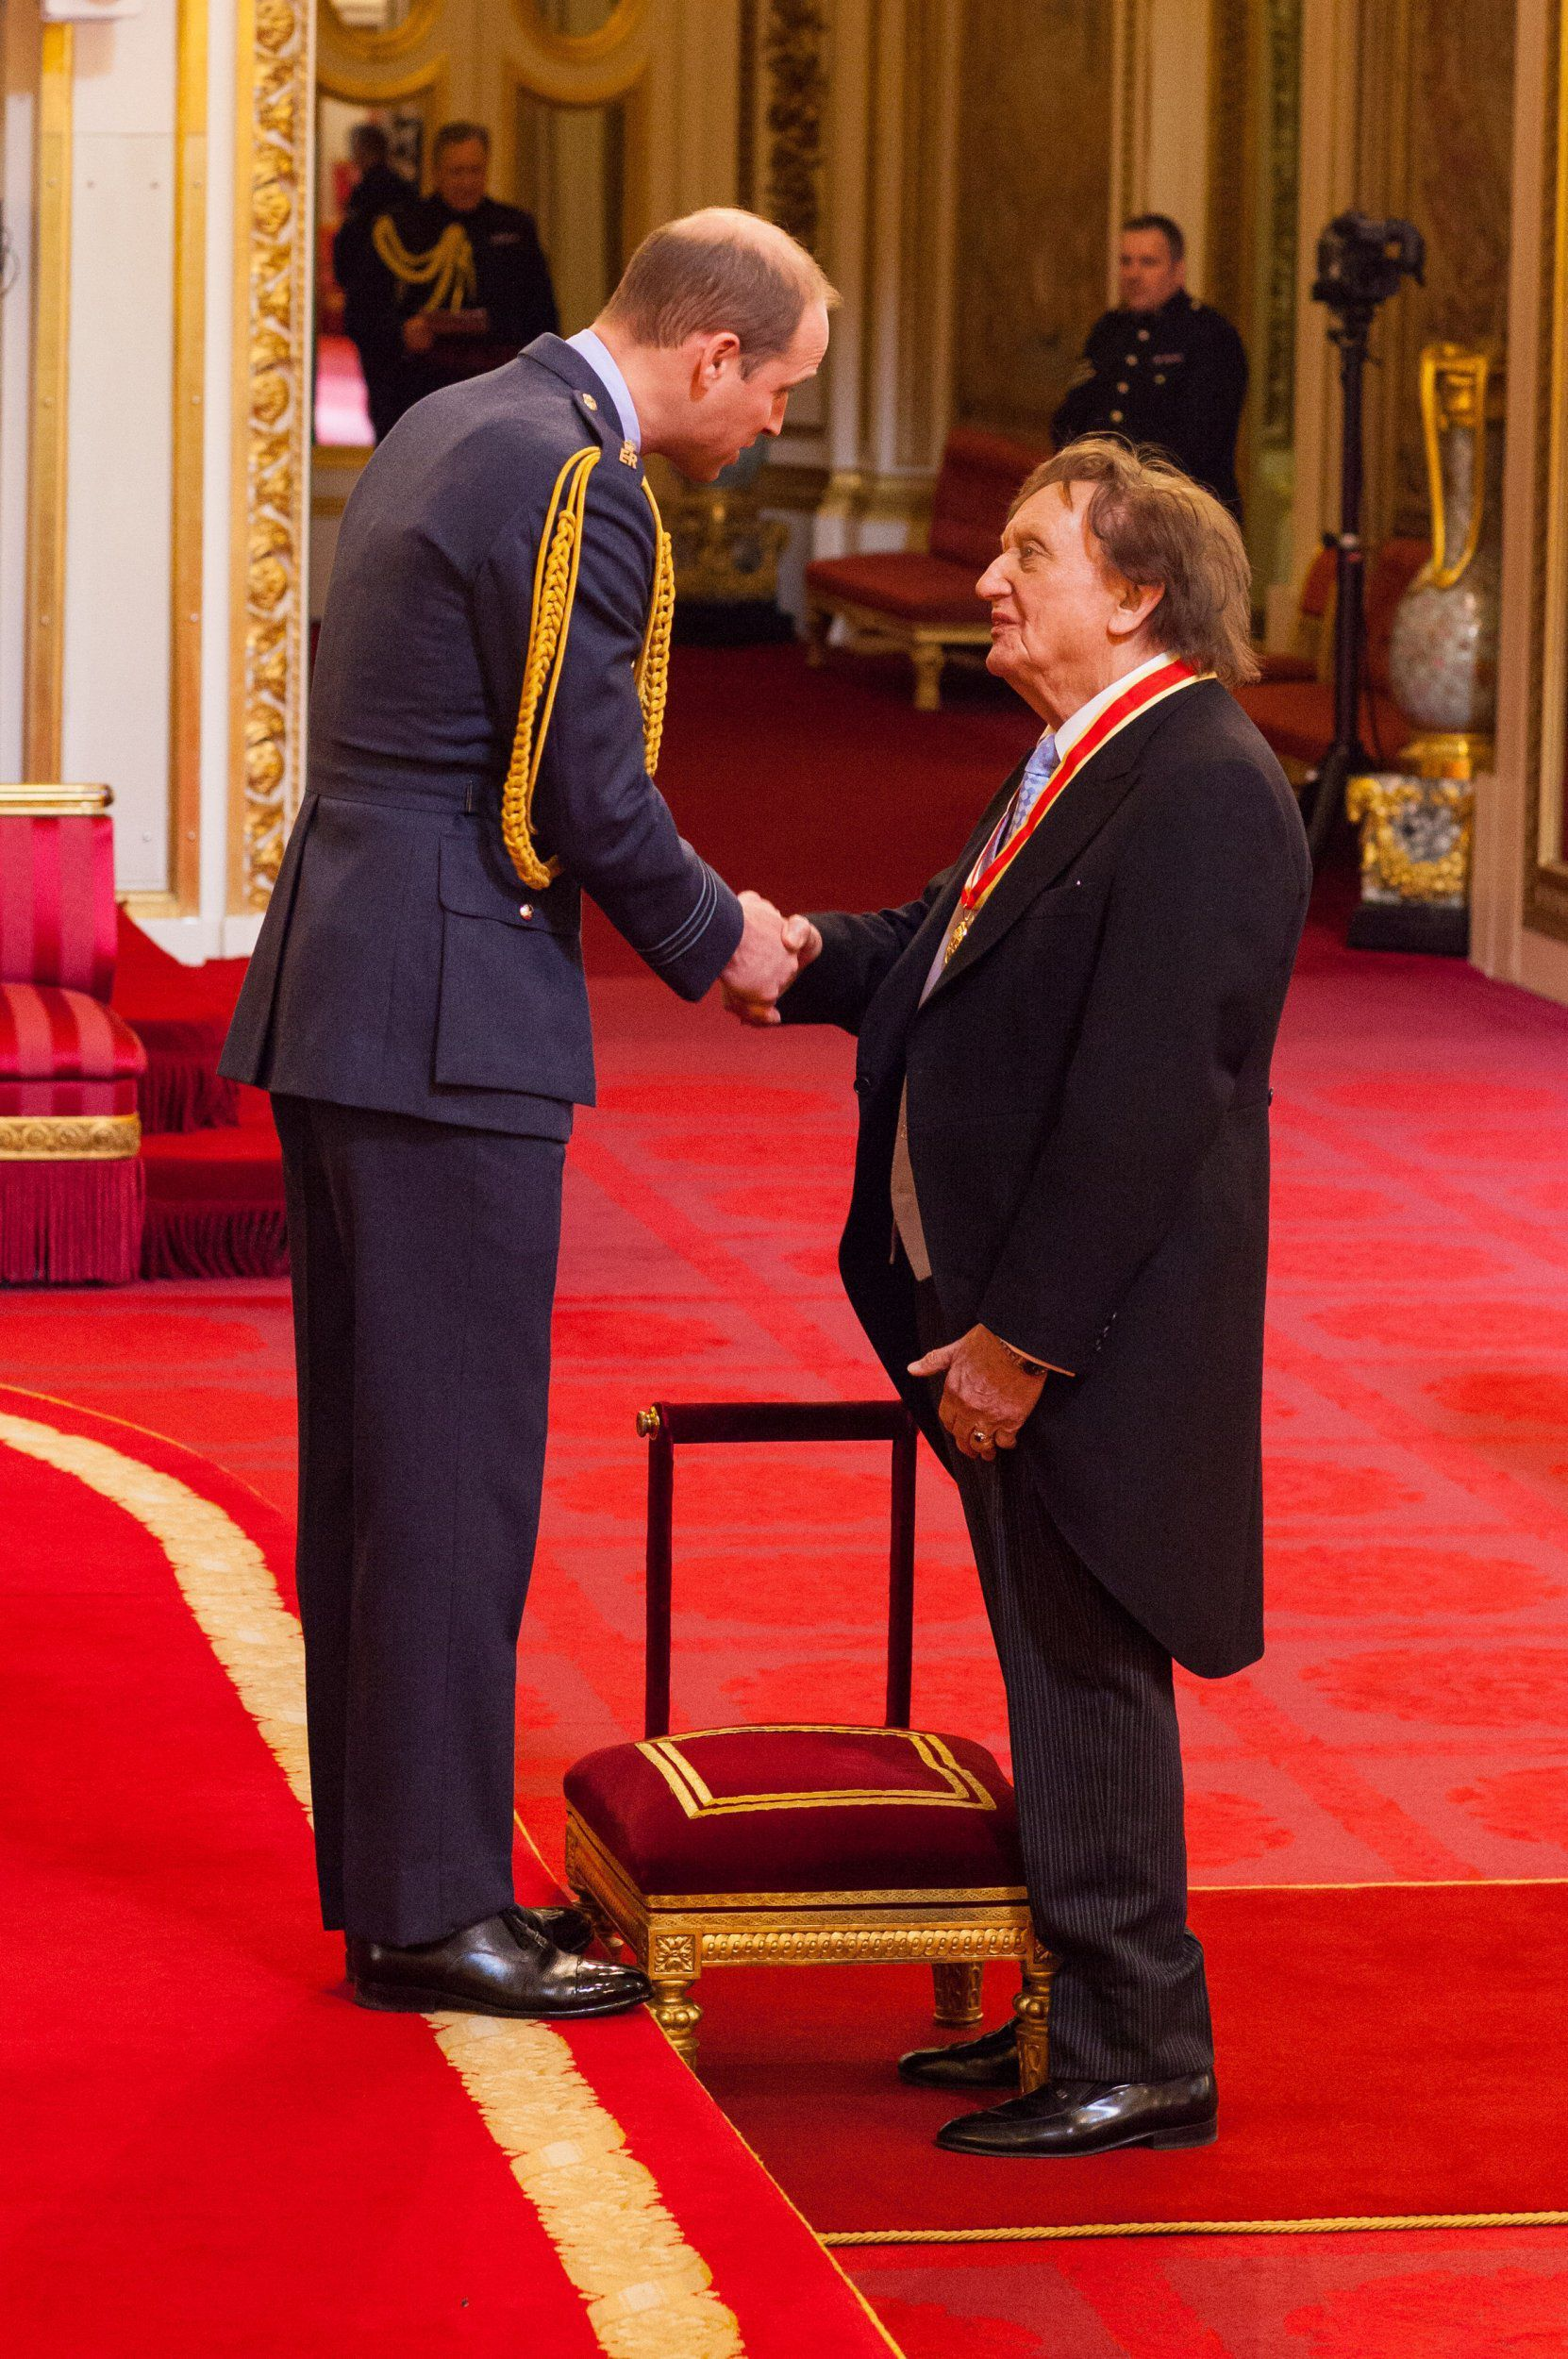 Sir Ken Dodd from Liverpool is made a Knight Bachelor of the British Empire by the Duke of Cambridge at Buckingham Palace. PRESS ASSOCIATION Photo. Picture date: Thursday March 2, 2017. See PA story ROYAL Investiture. Photo credit should read: Dominic Lipinski/PA Wire